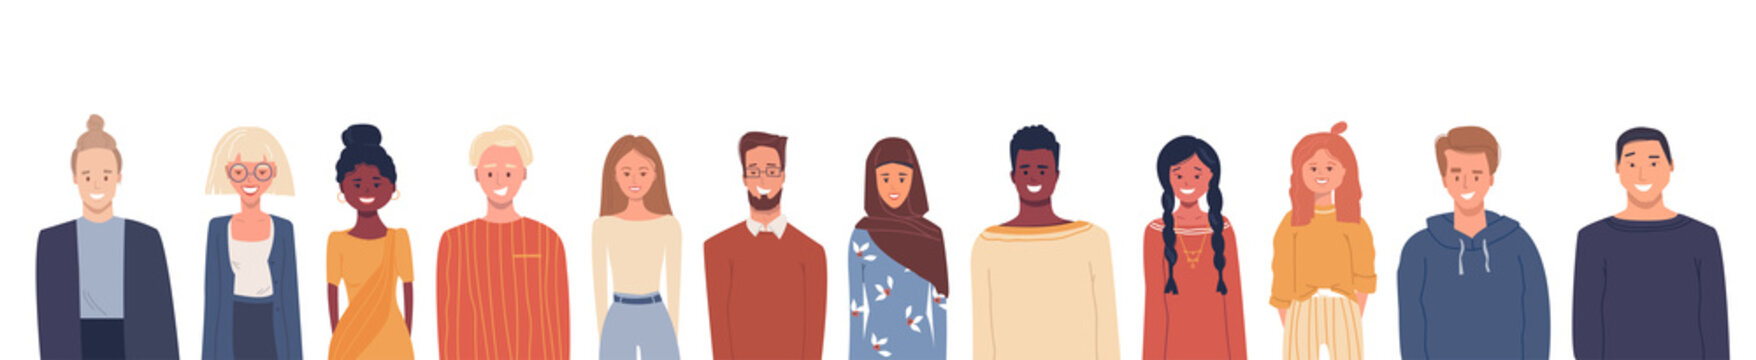 Vector illustration in flat style. Global society. Happy smiling people of different nationalities, cultures isolated on white. Multiethnic group of people. White empty place for text